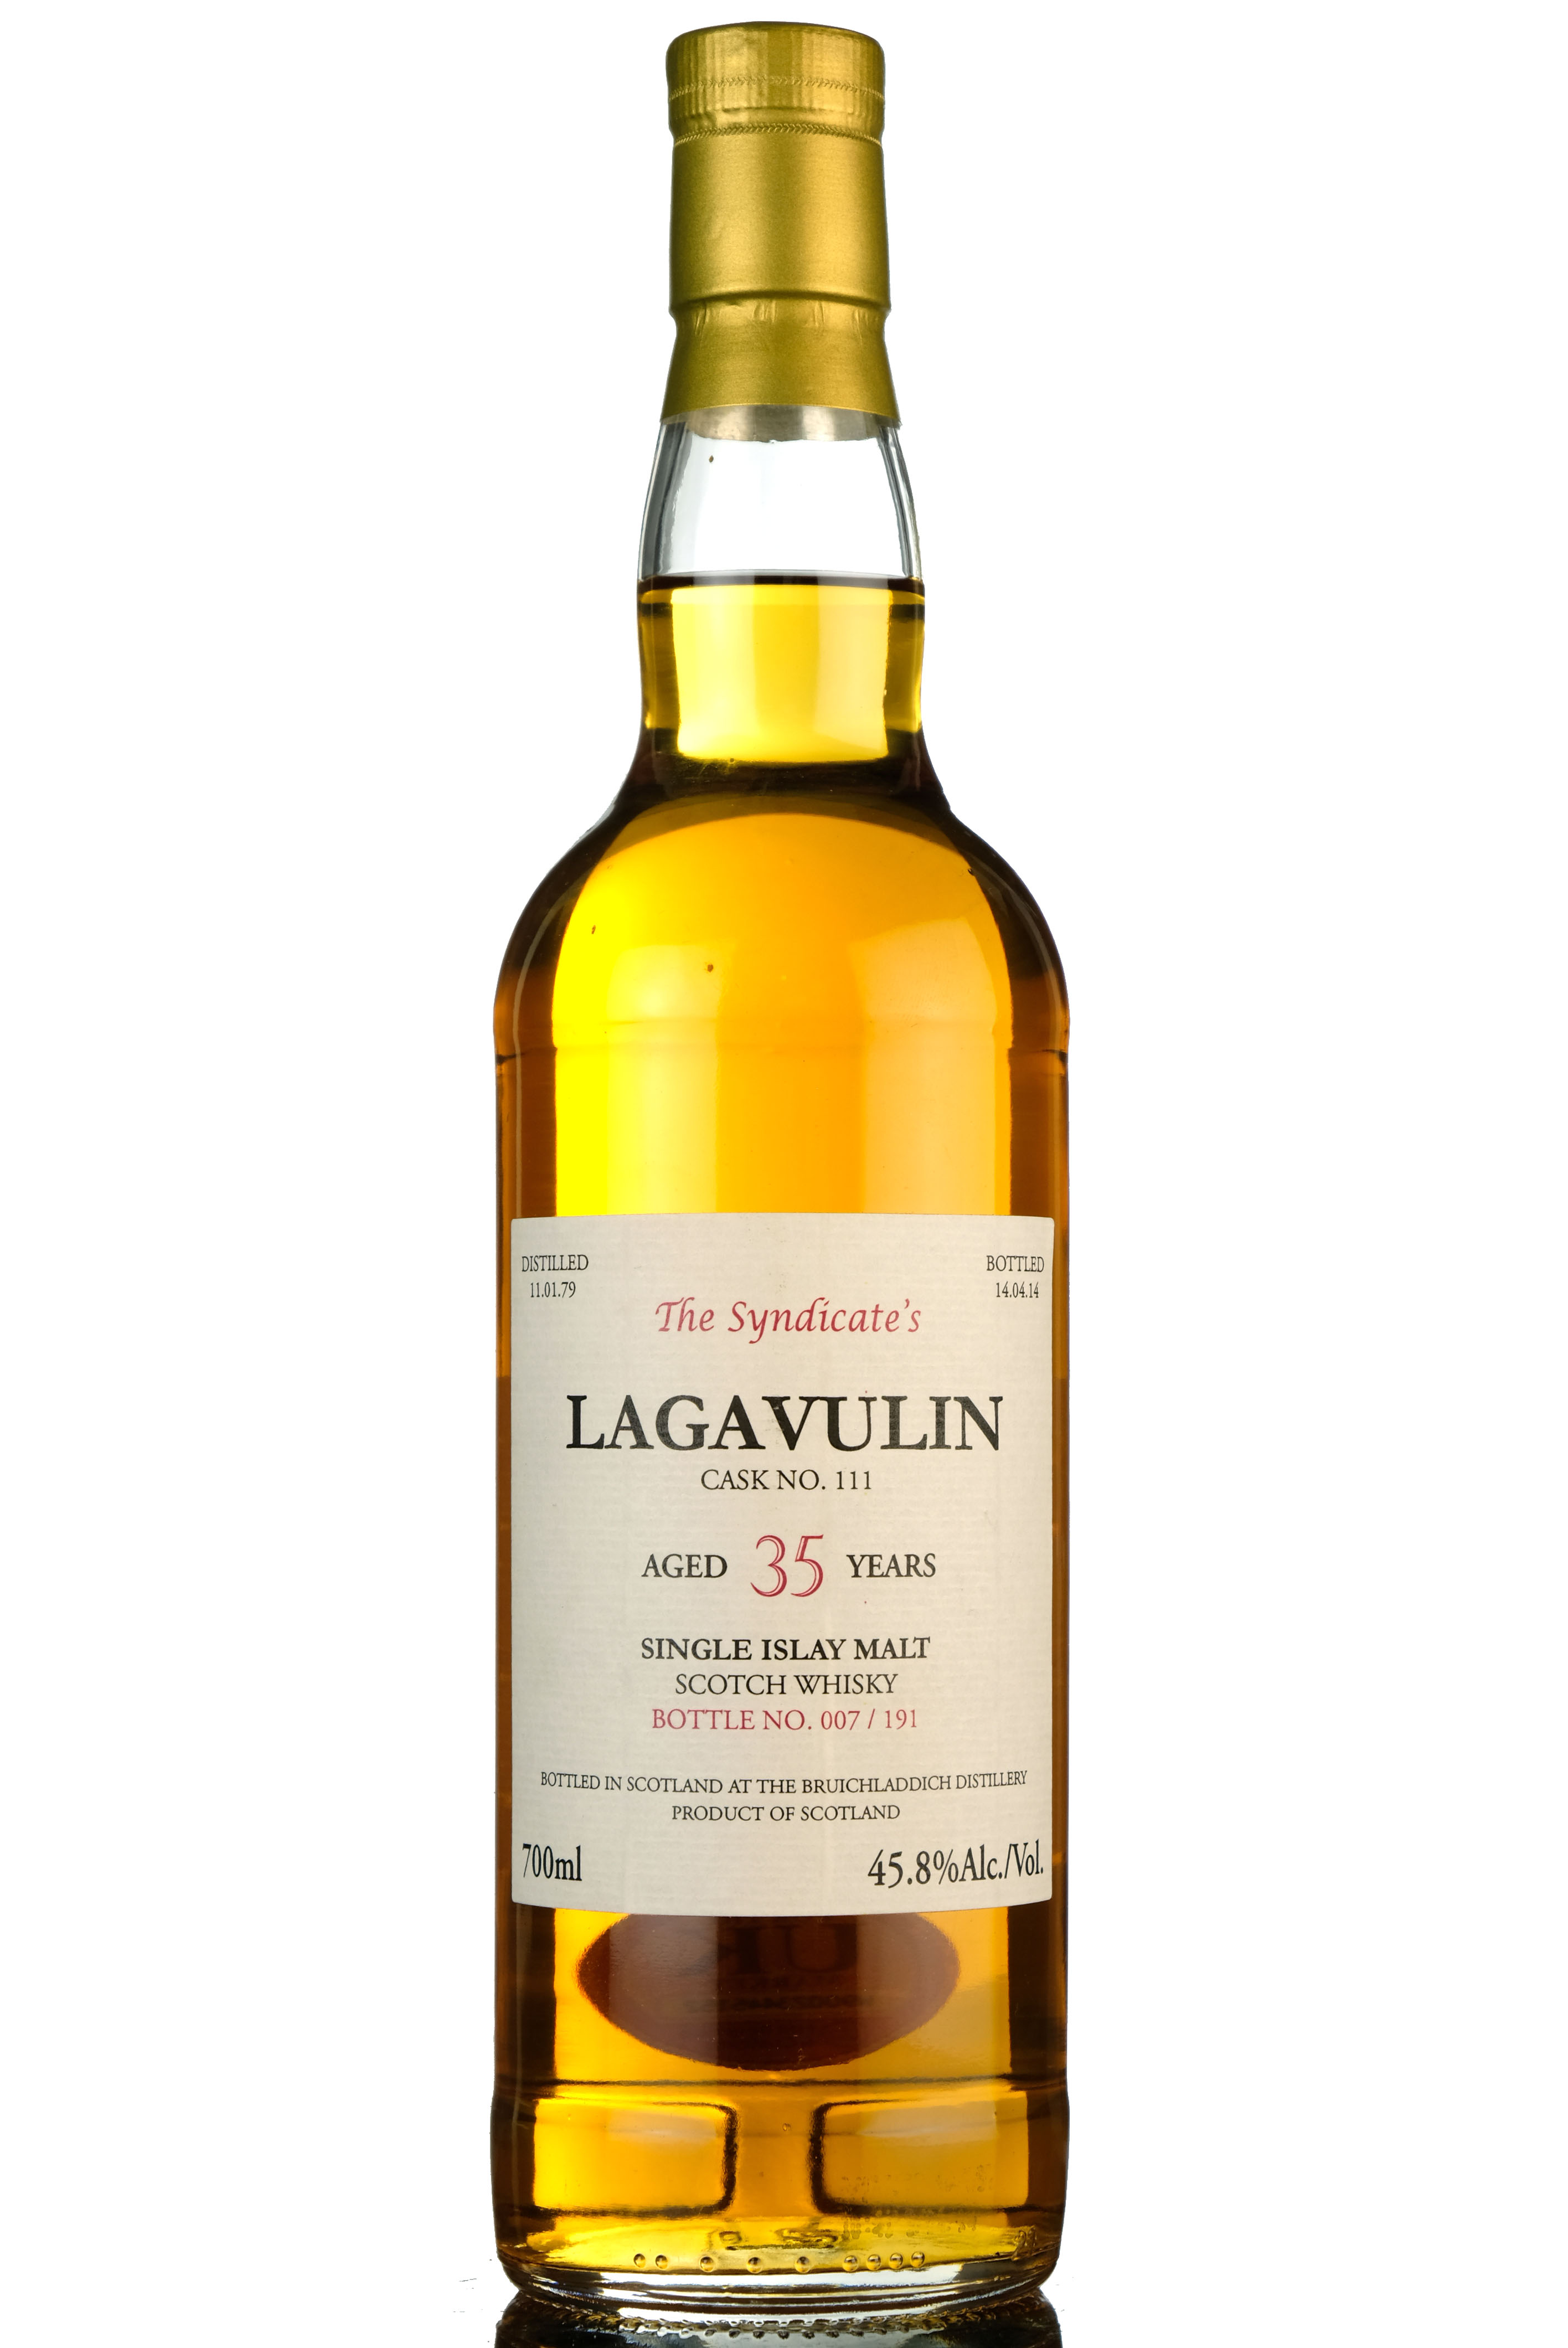 lagavulin 1979-2014 - 35 year old - the syndicate - 191 bottles